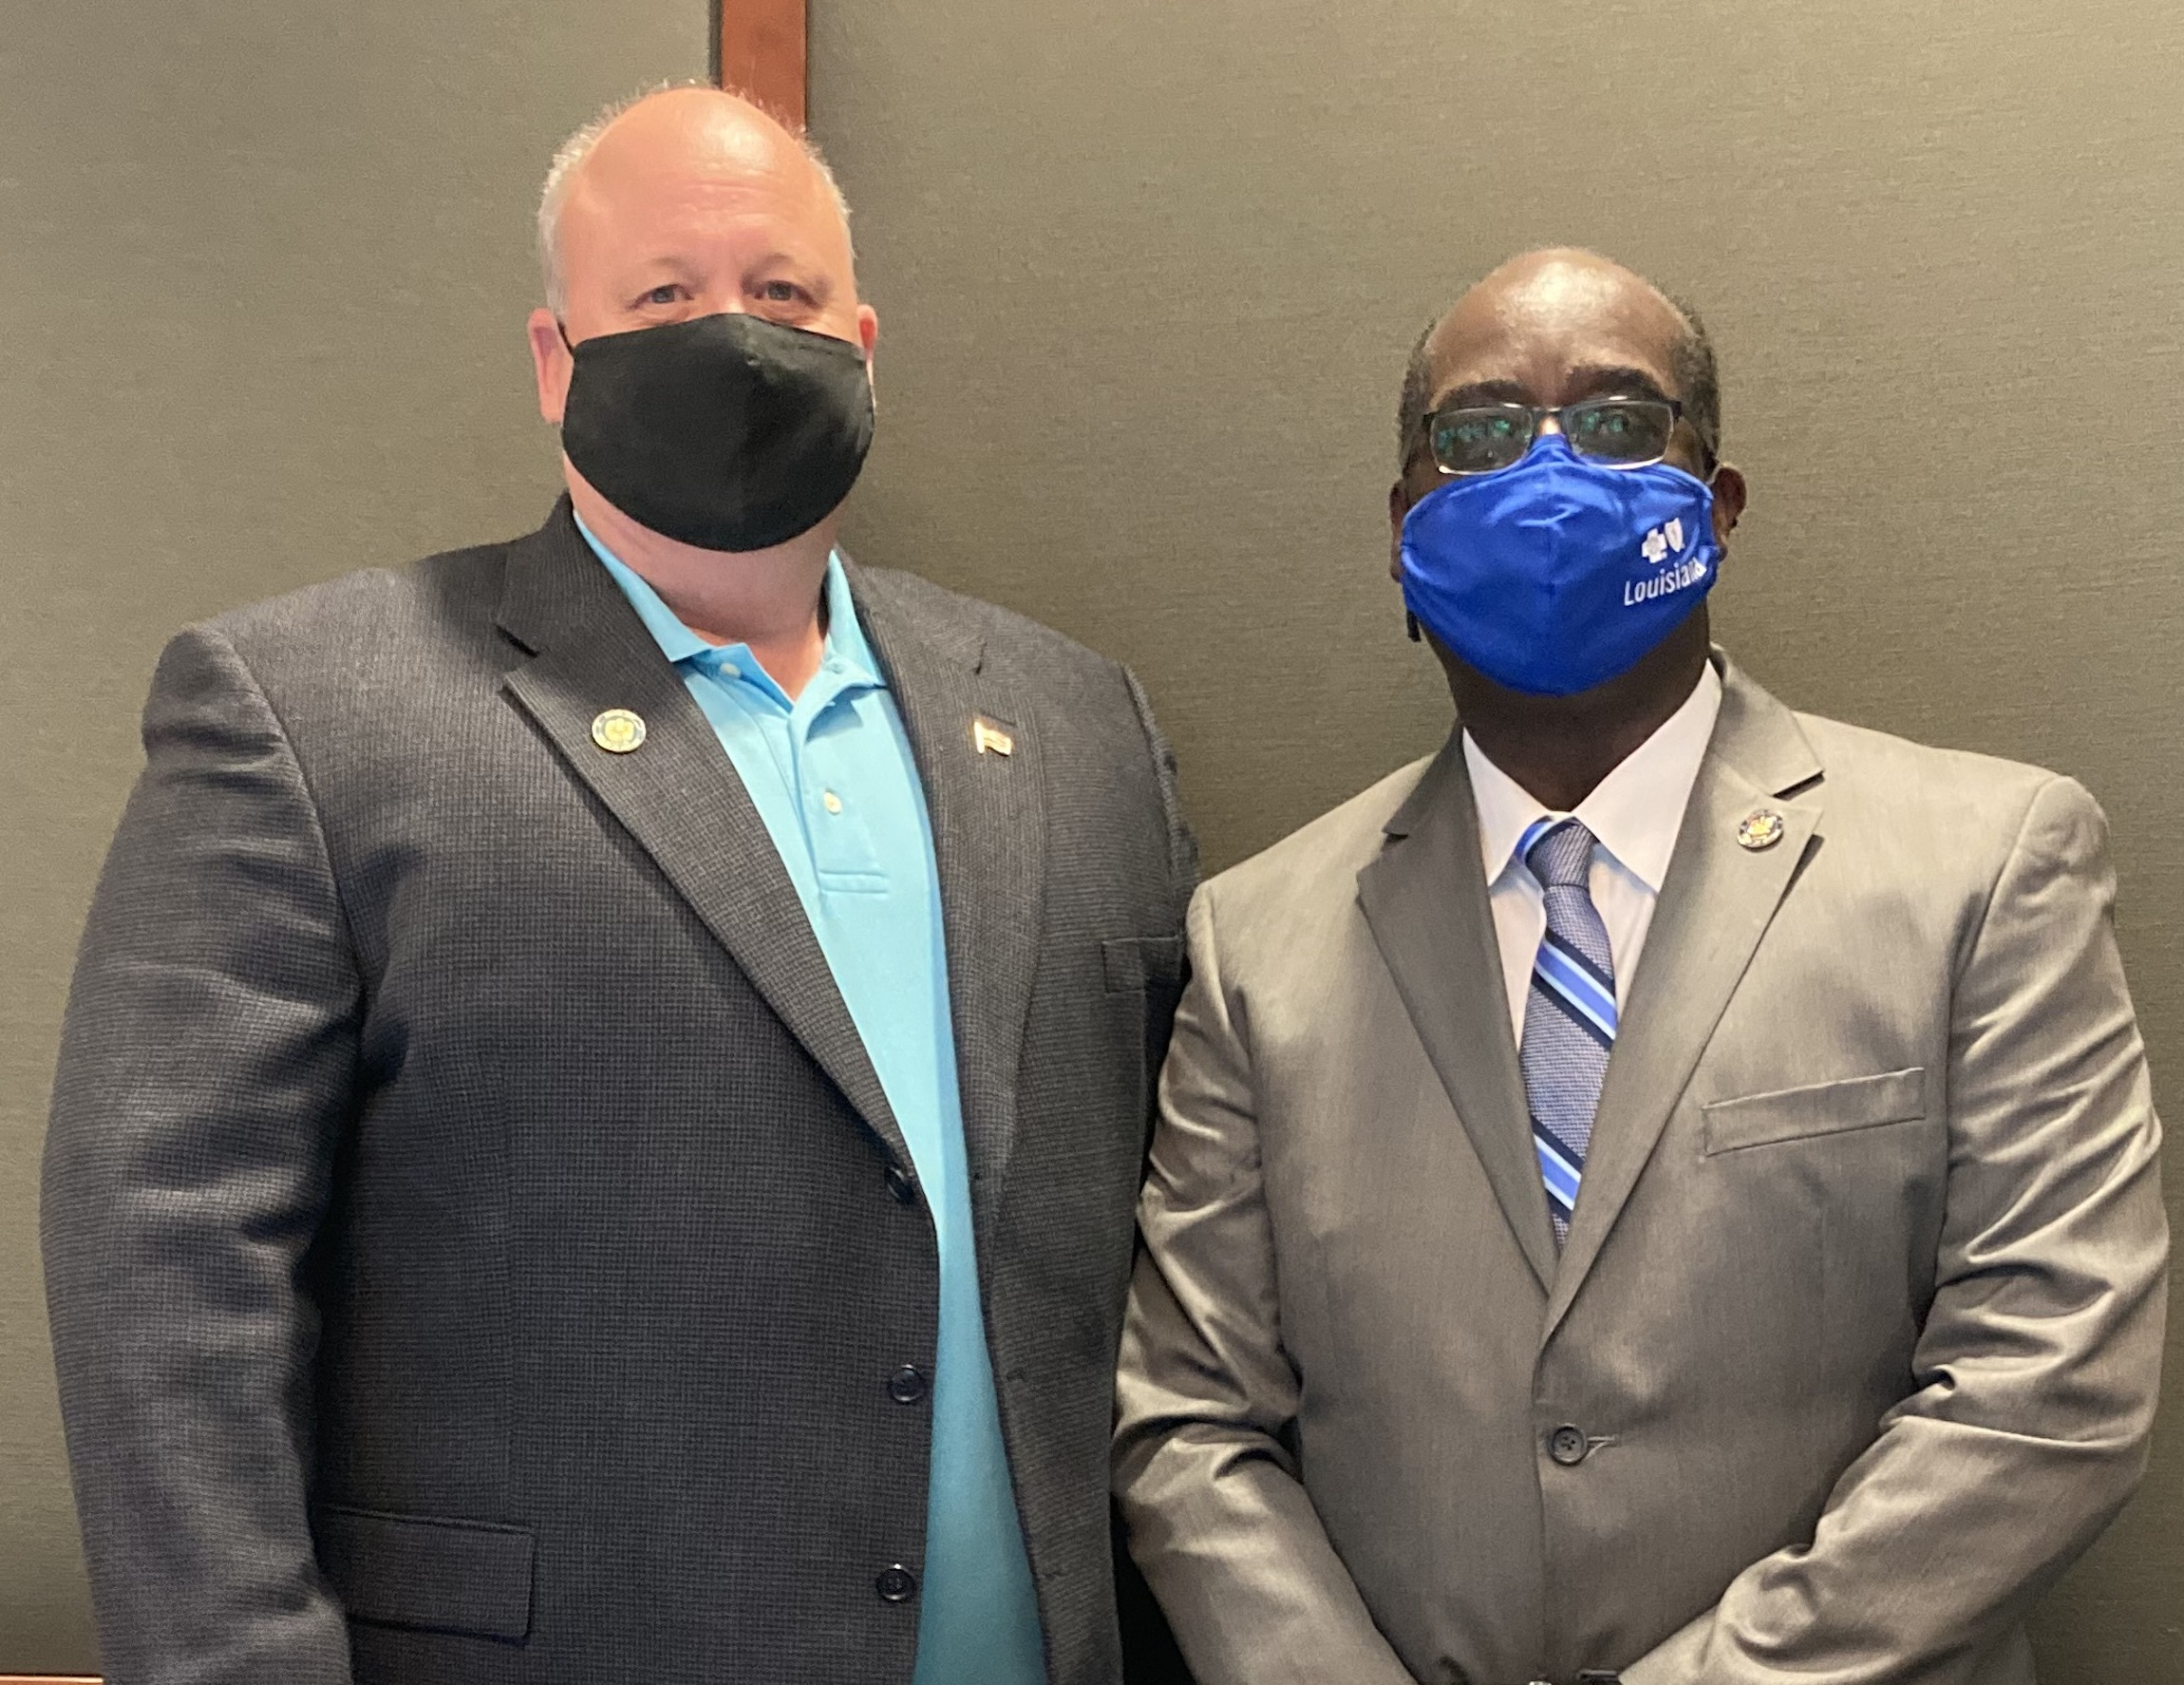 Jerome Darby (right) was named president of the Bossier Parish Police Jury Wednesday, while Tom Salzer was picked vice president.